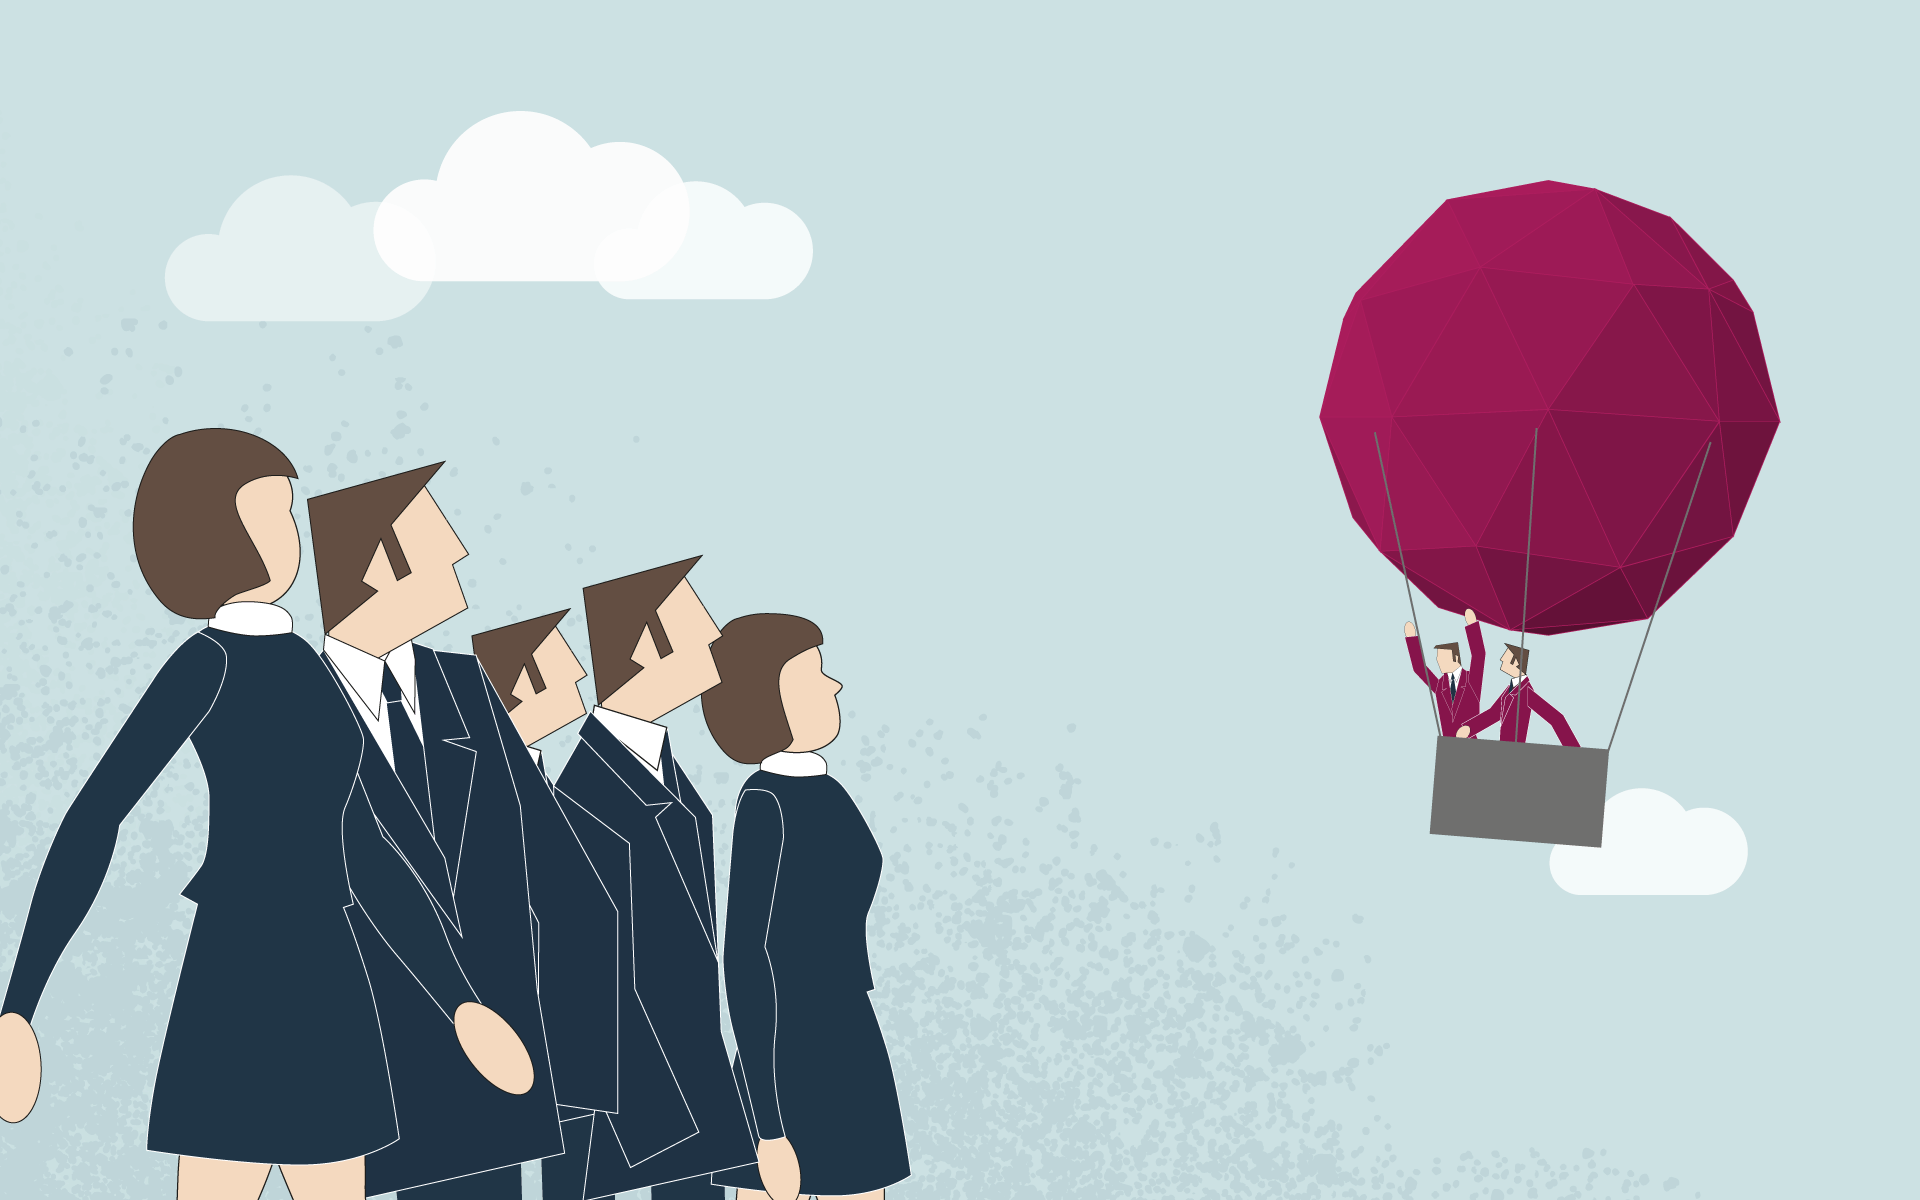 Business Transformation - Ballon is flying away from the competitors